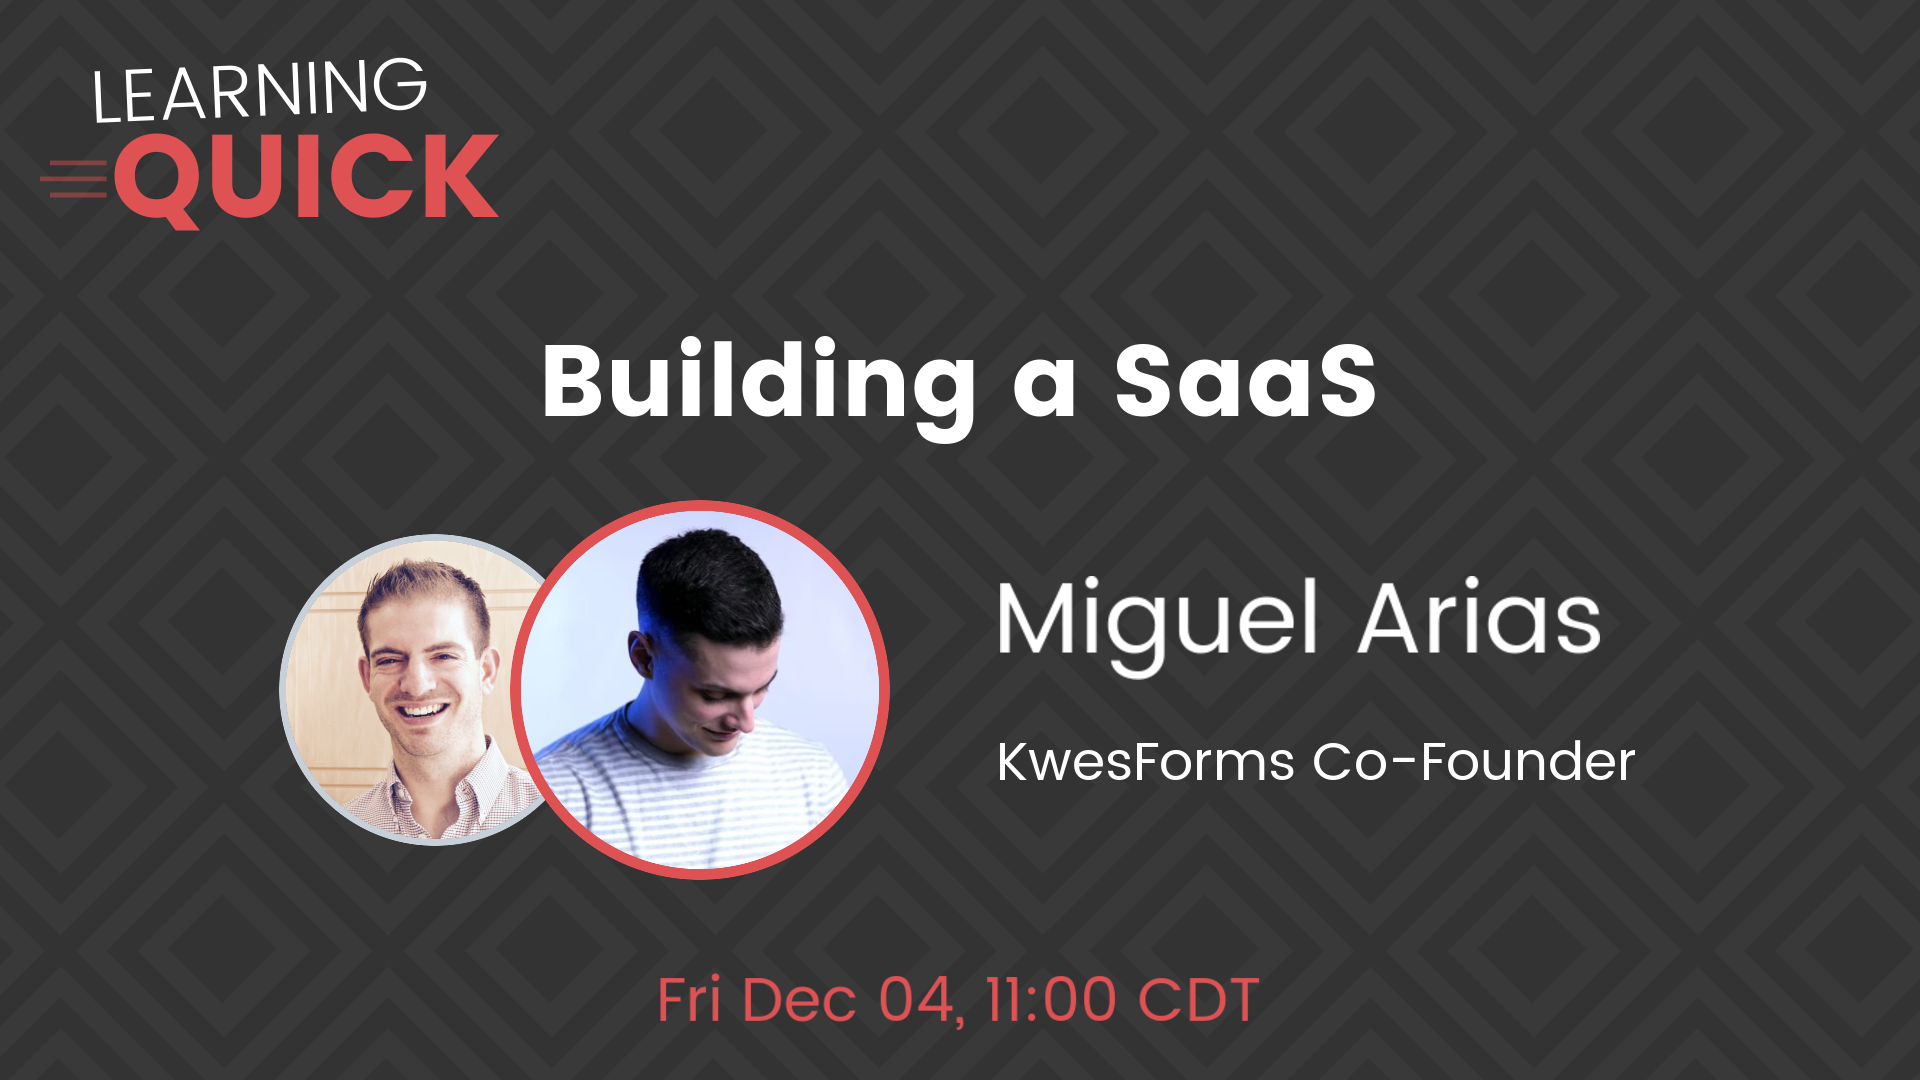 Building a SaaS with Miguel